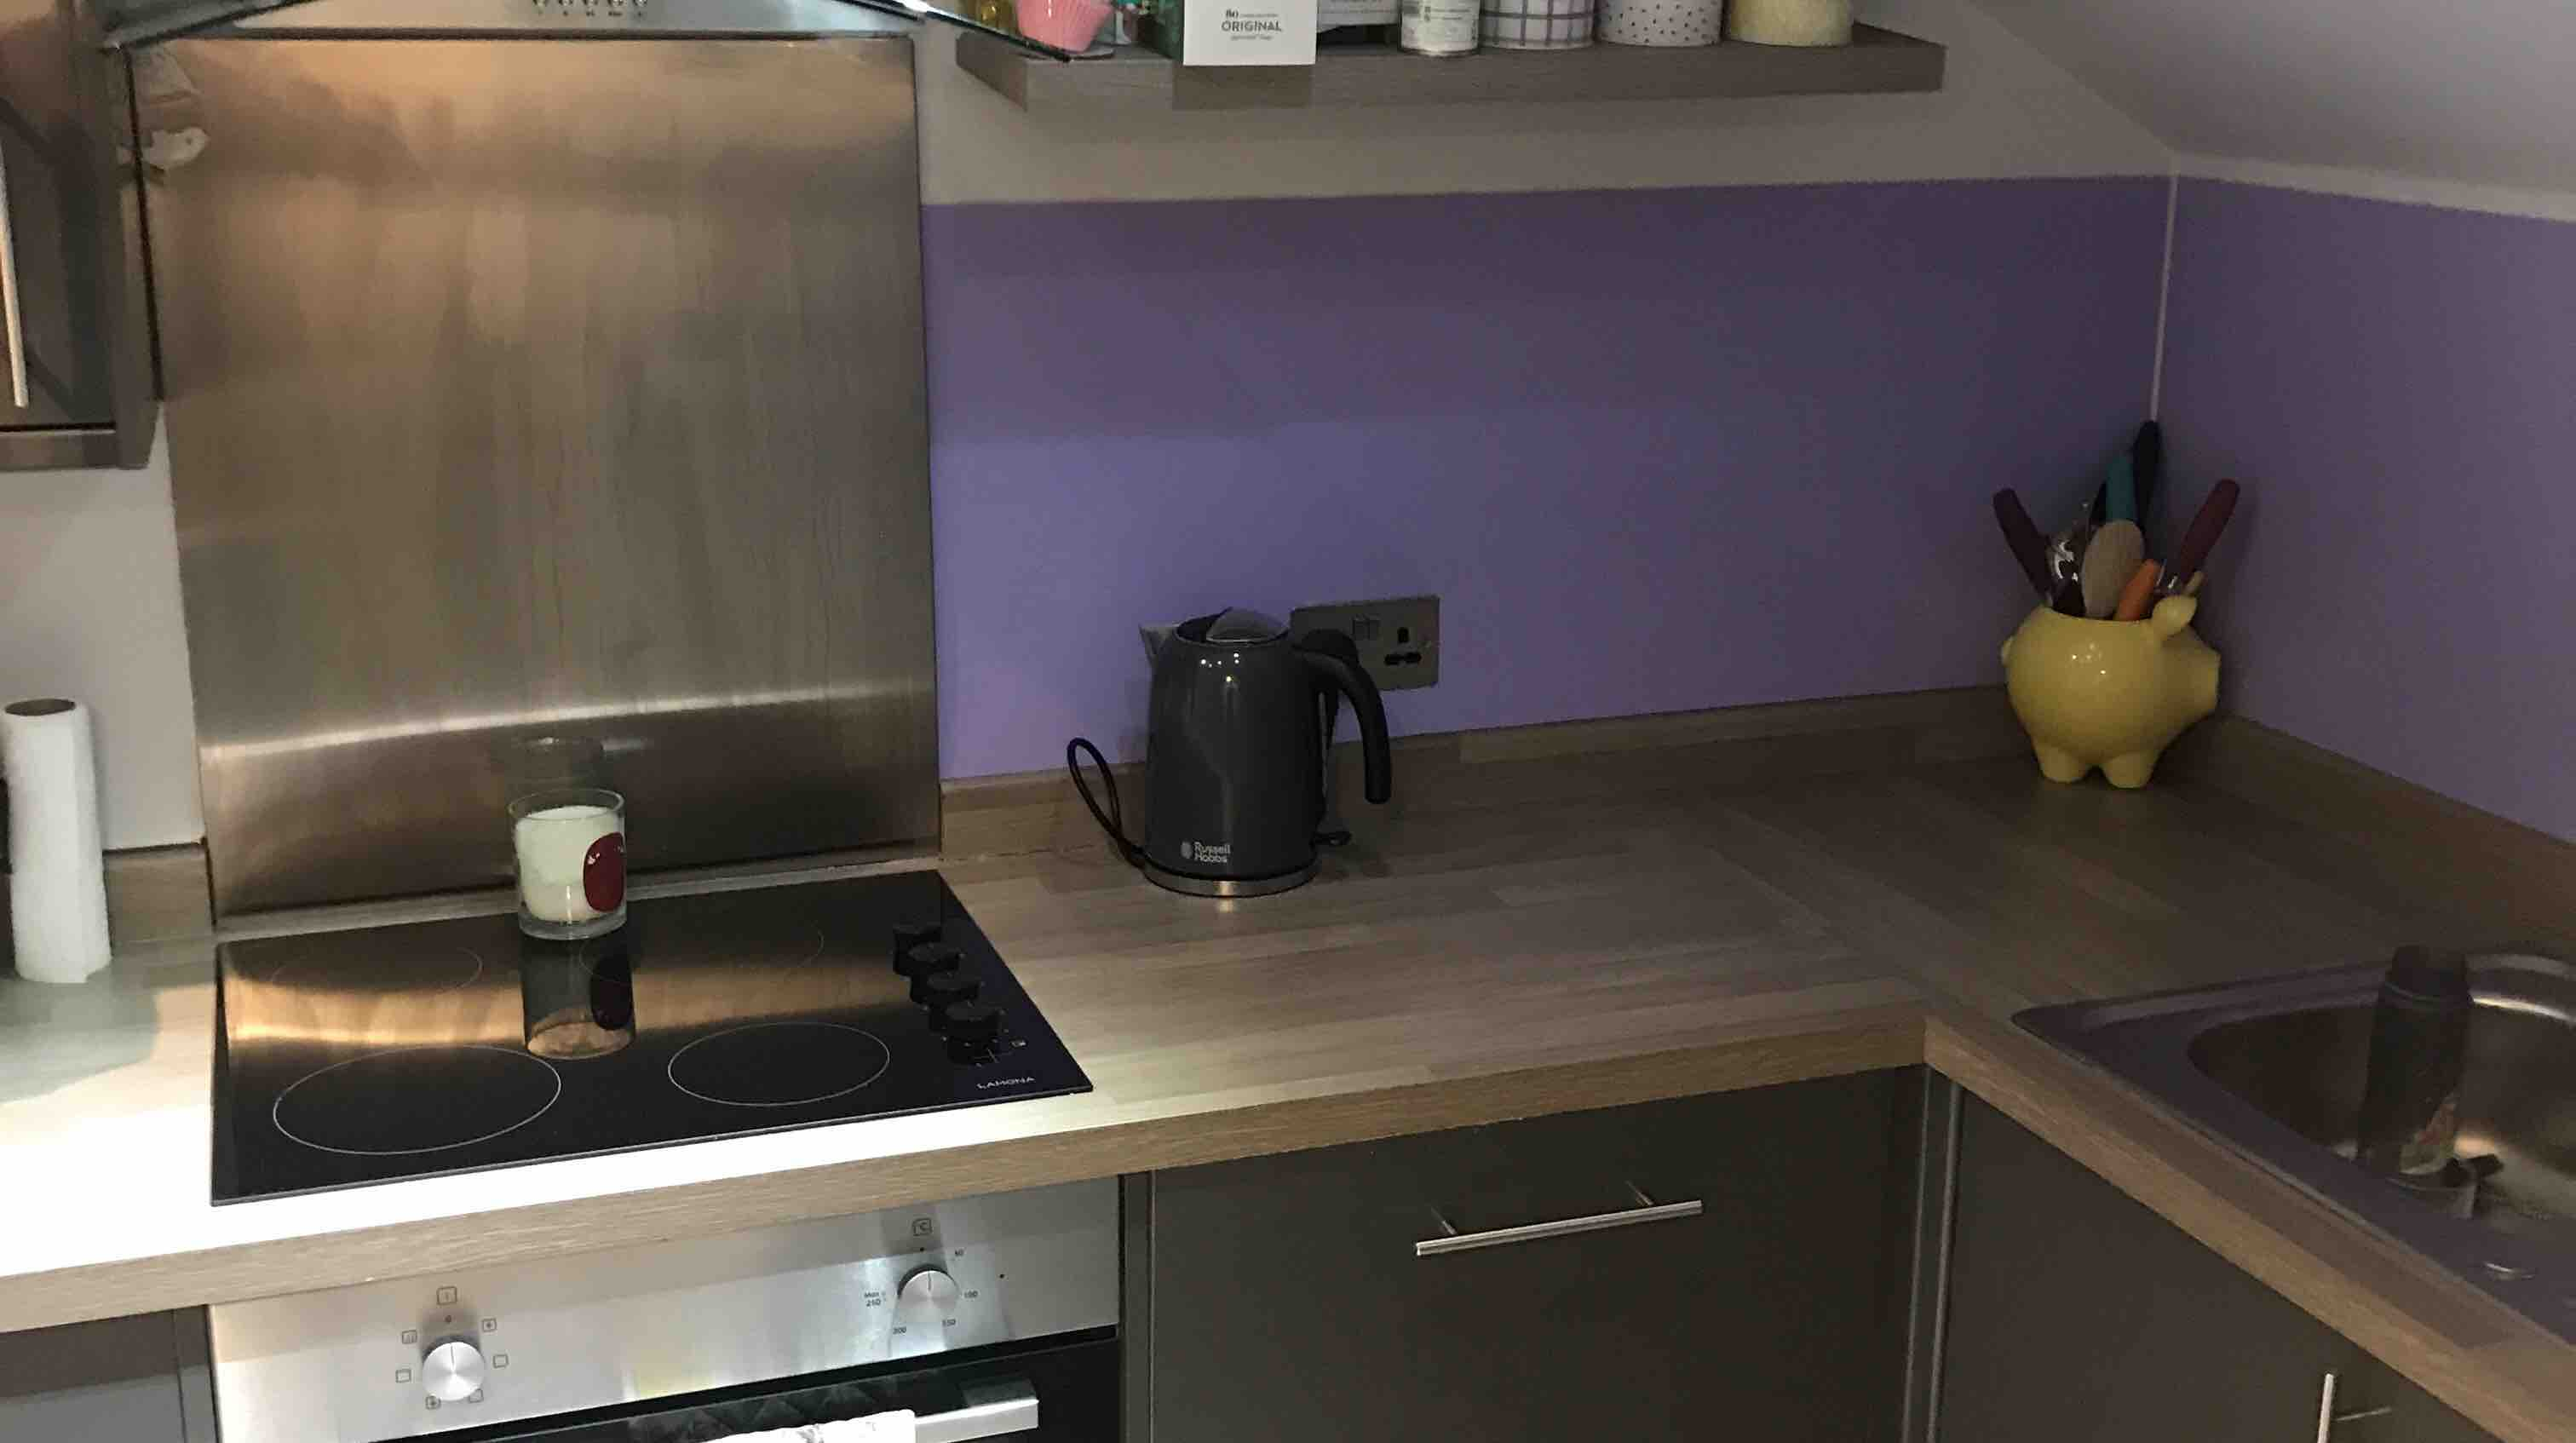 1 room in Stopsley, Luton, LU20FW RoomsLocal image